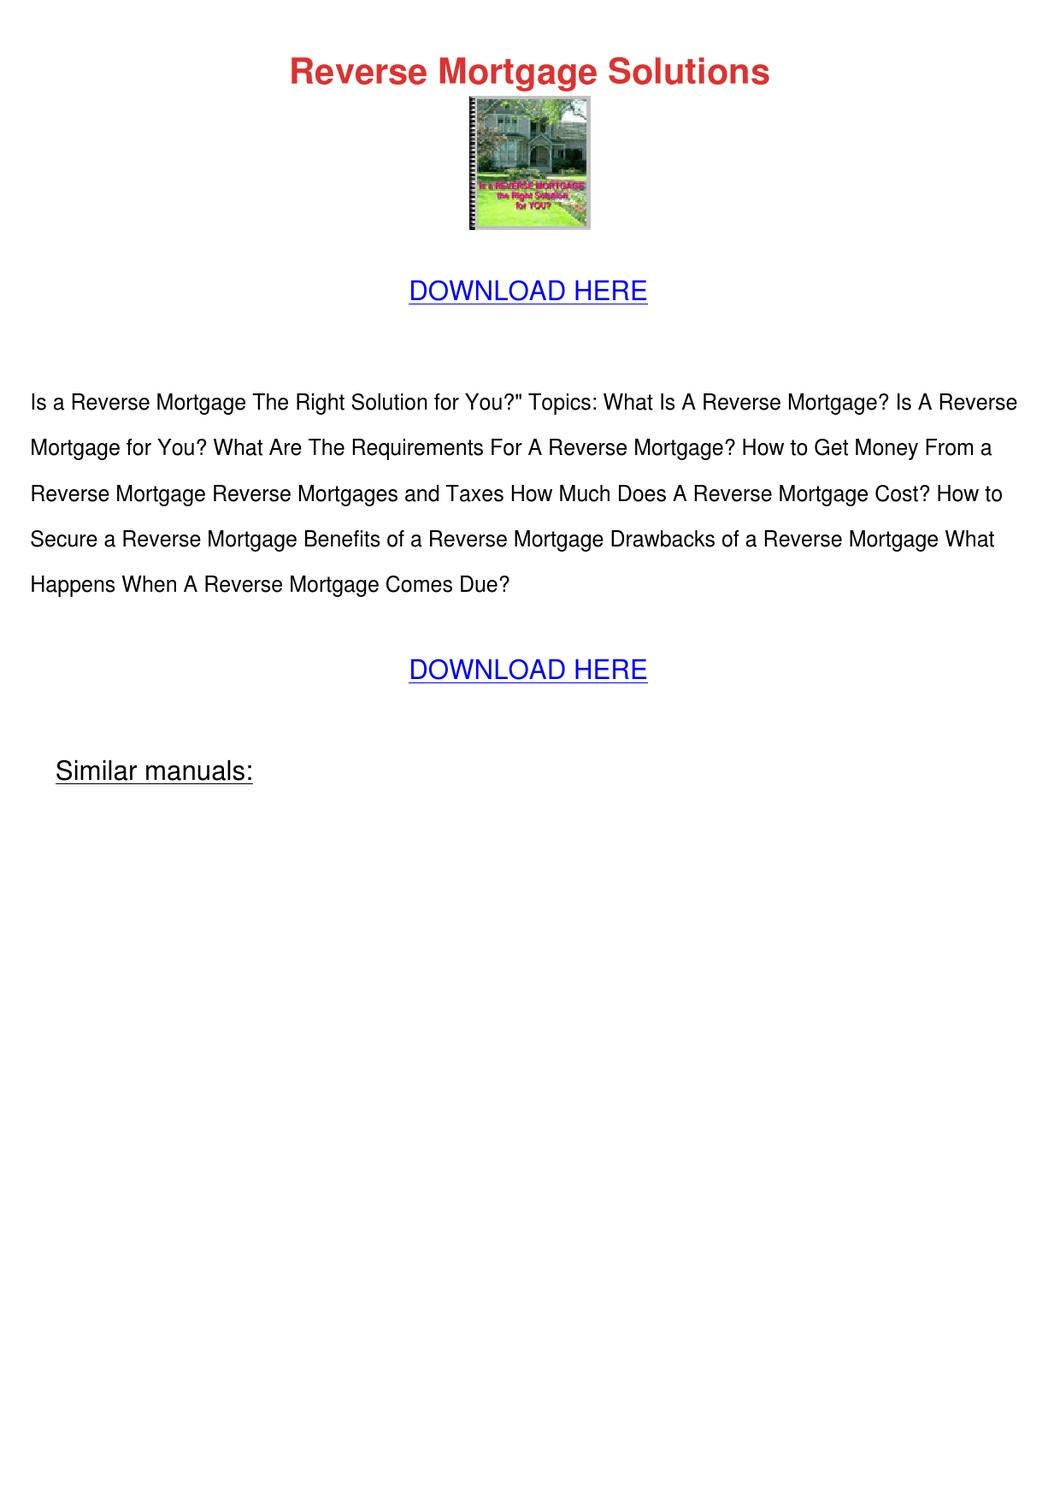 Reverse Mort... Reverse Mortgage Solutions